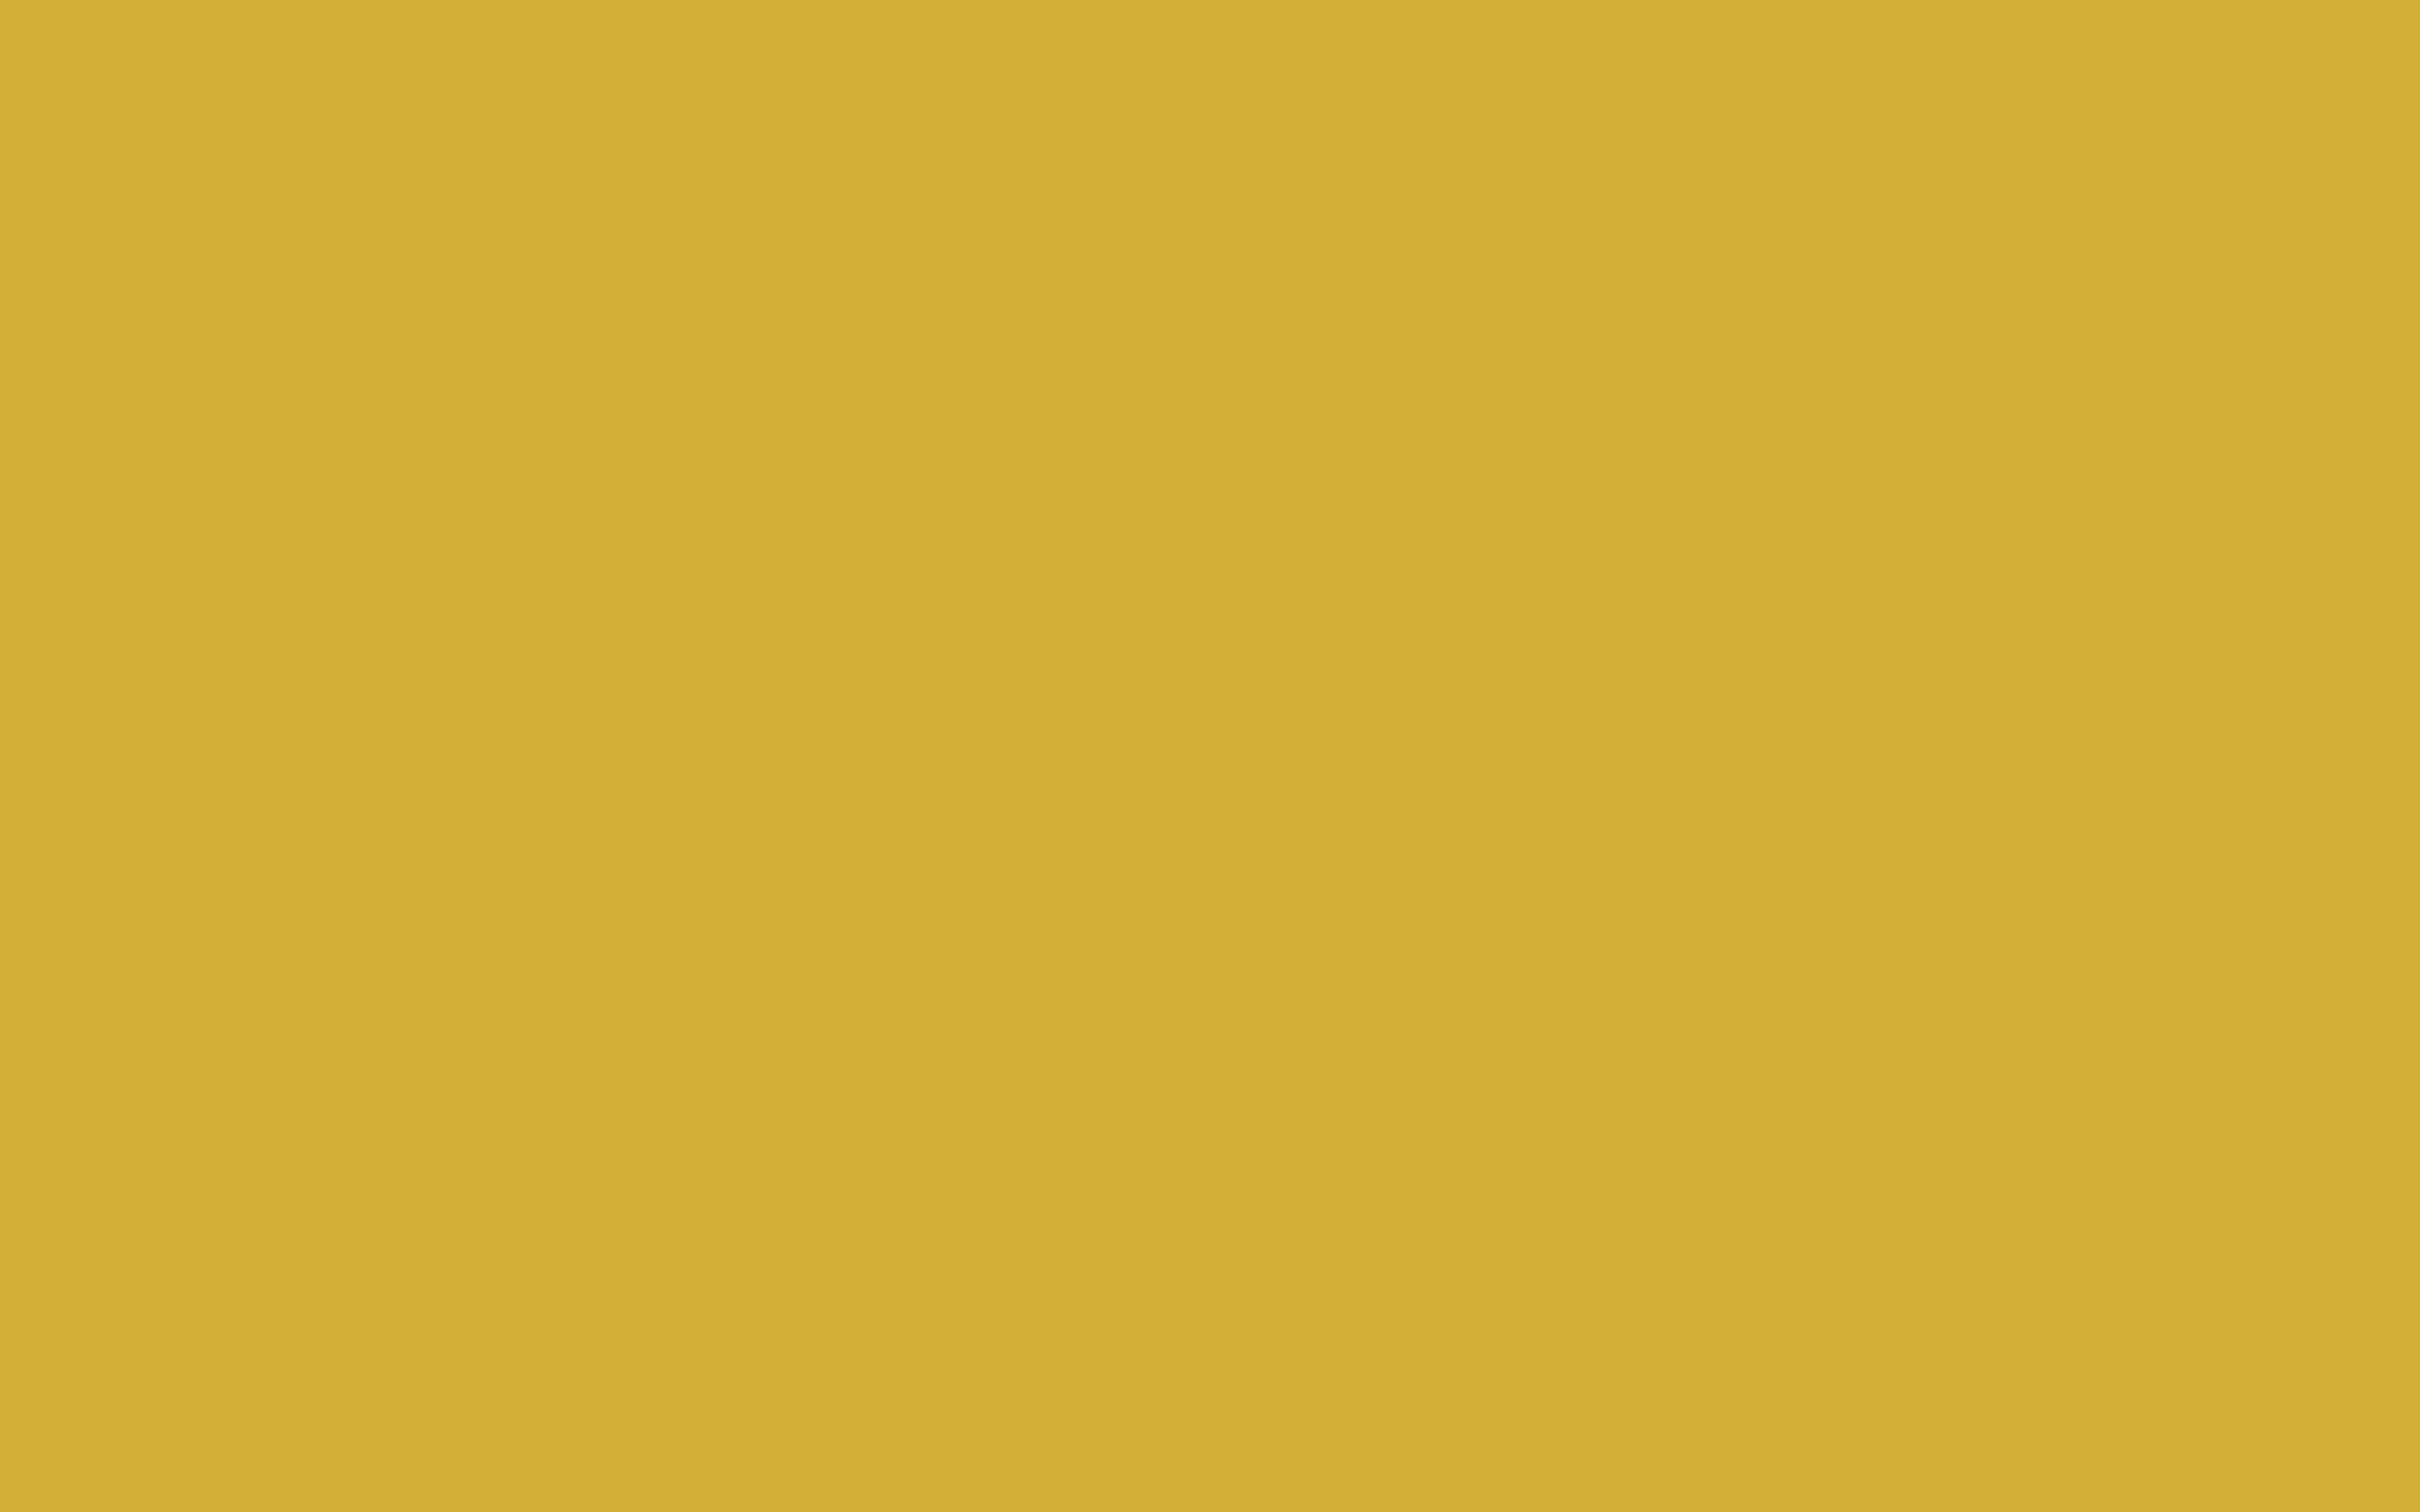 2560x1600 Gold Metallic Solid Color Background